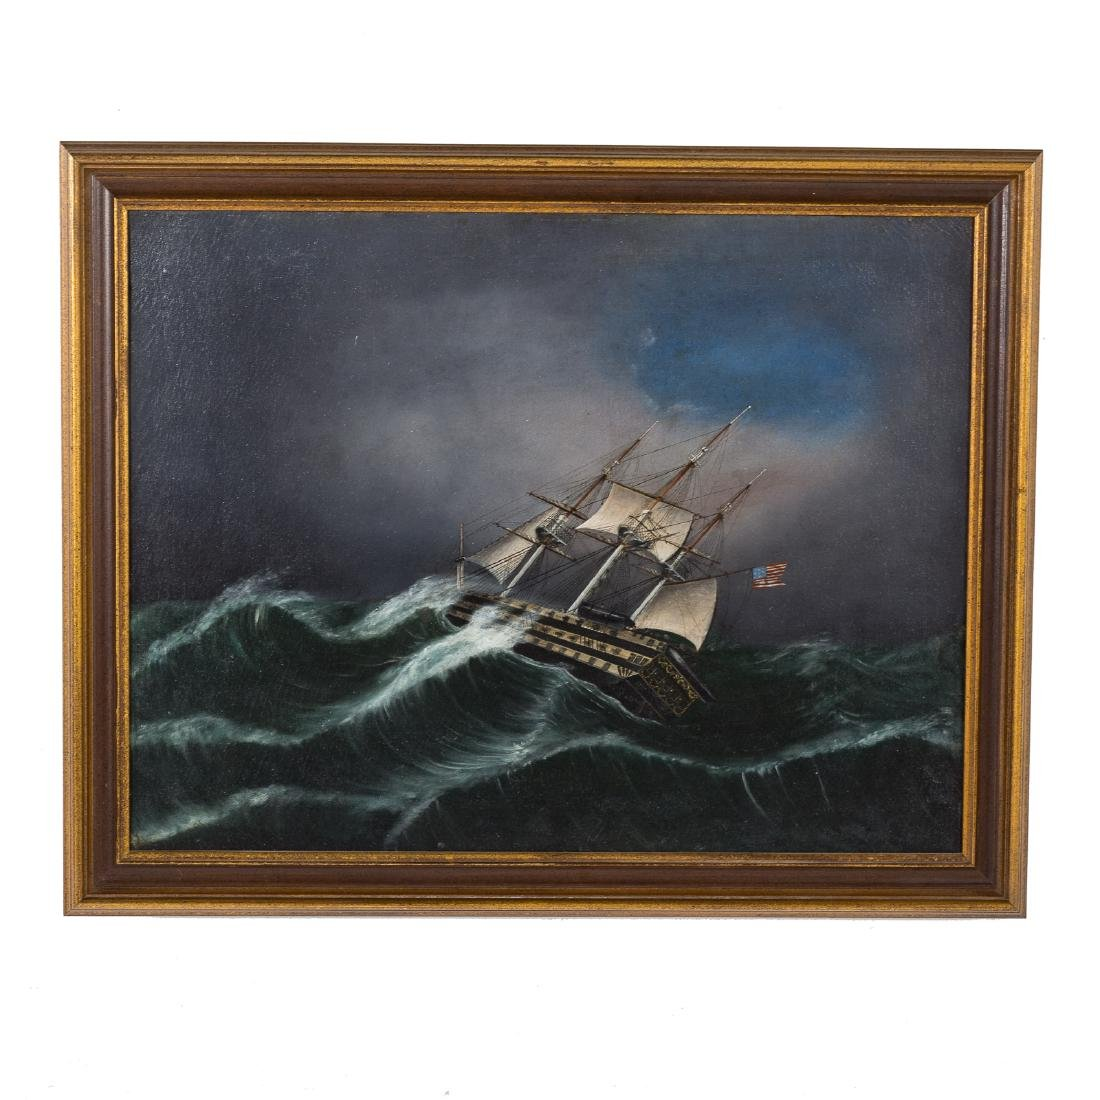 American School. Frigate in a Storm, oil on canvas